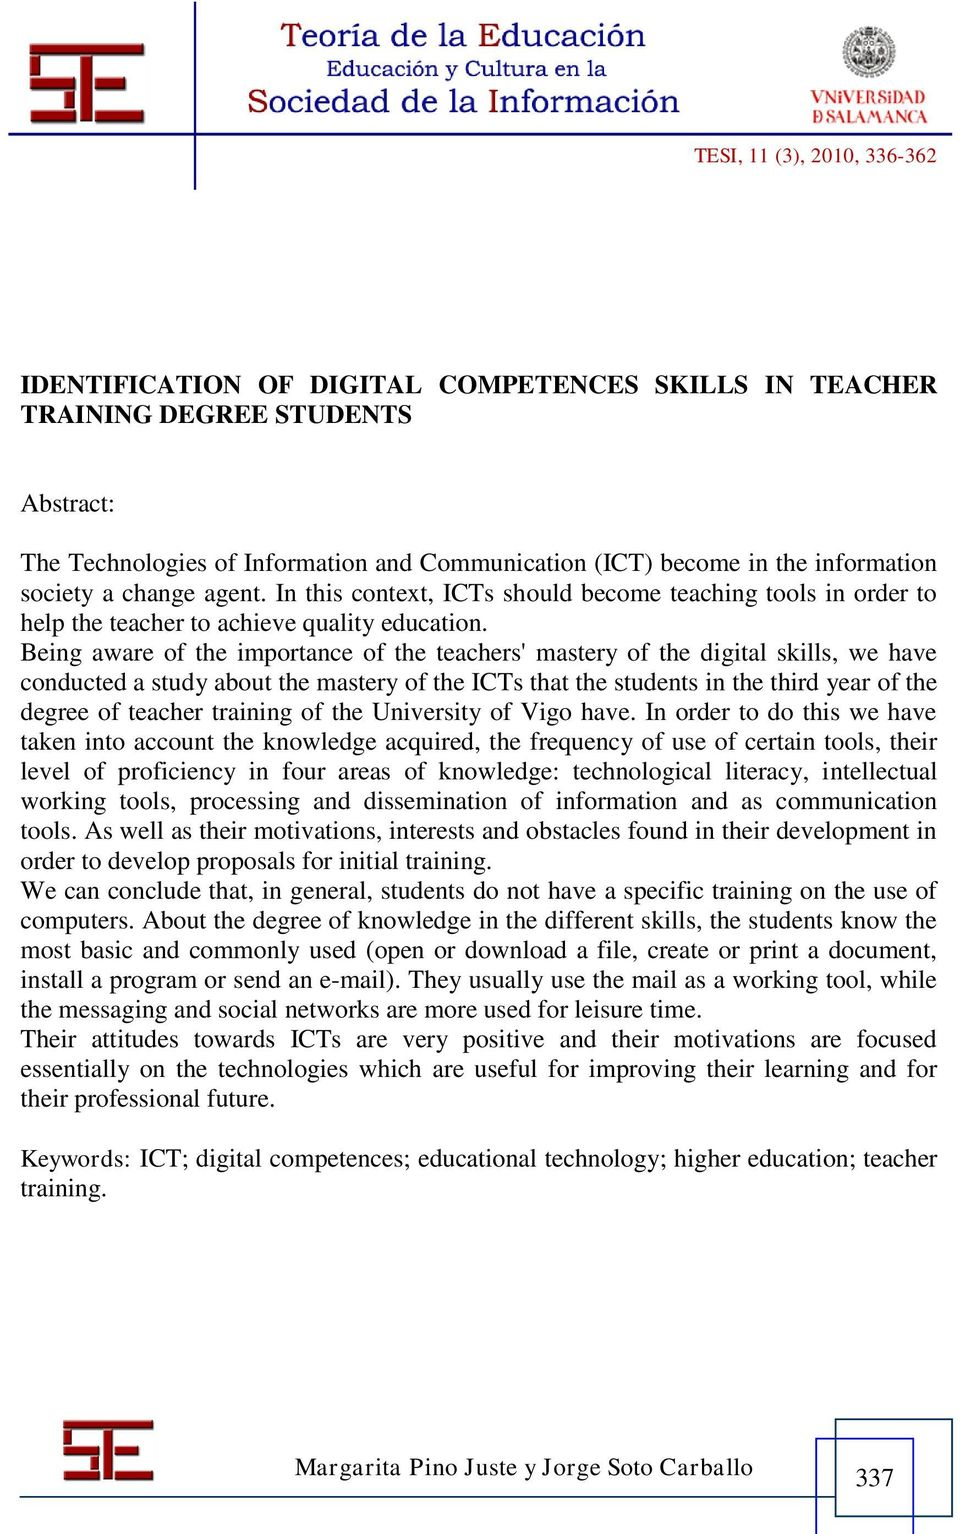 conducted a study about the mastery of the ICTs that the students in the third year of the degree of teacher training of the University of Vigo have In order to do this we have taken into account the